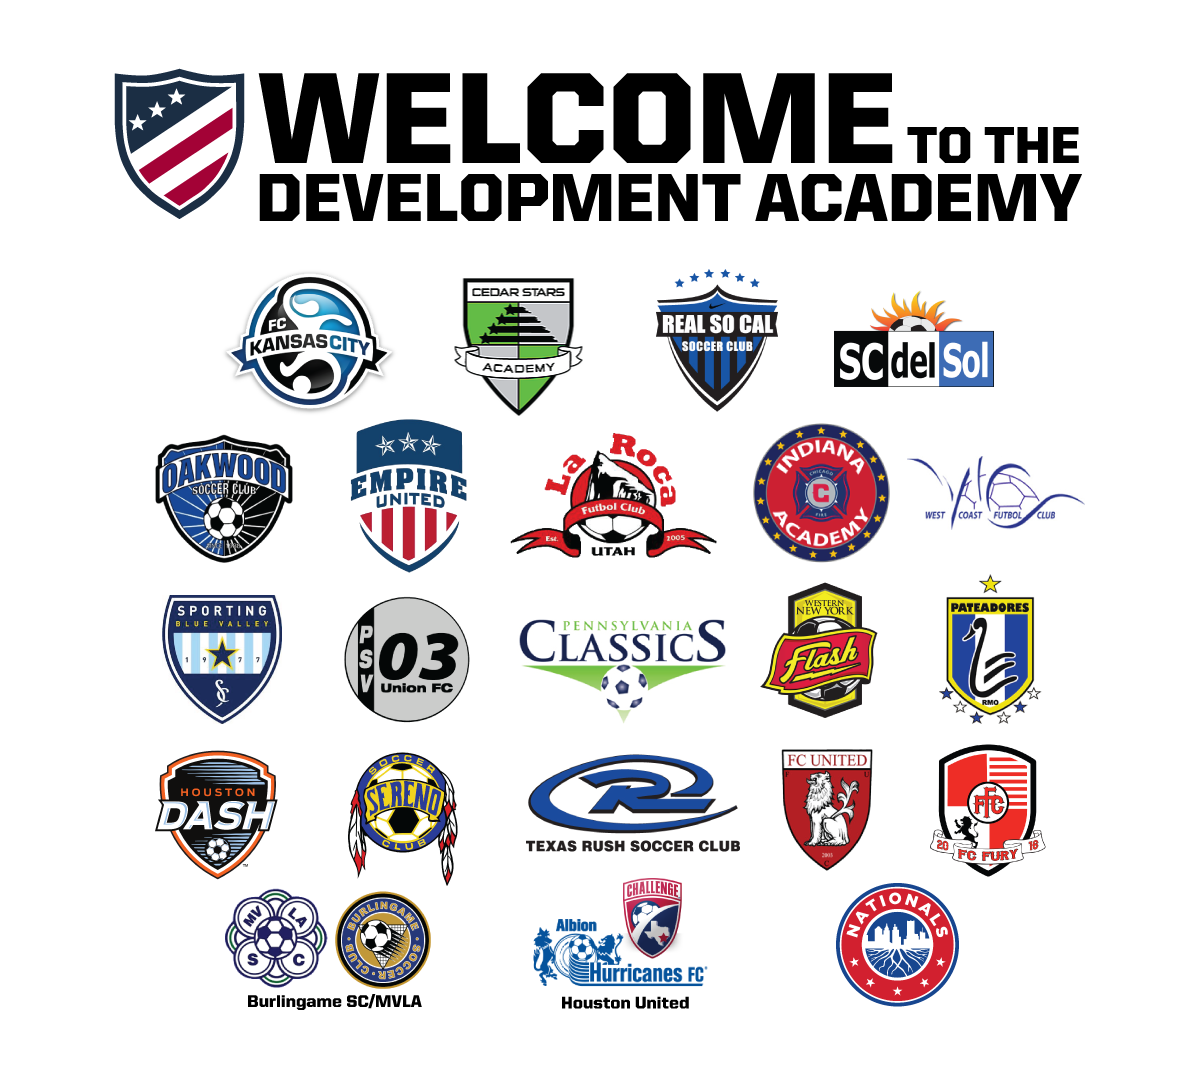 Empire United to take part in prestigious US Soccer Girls Development Academy